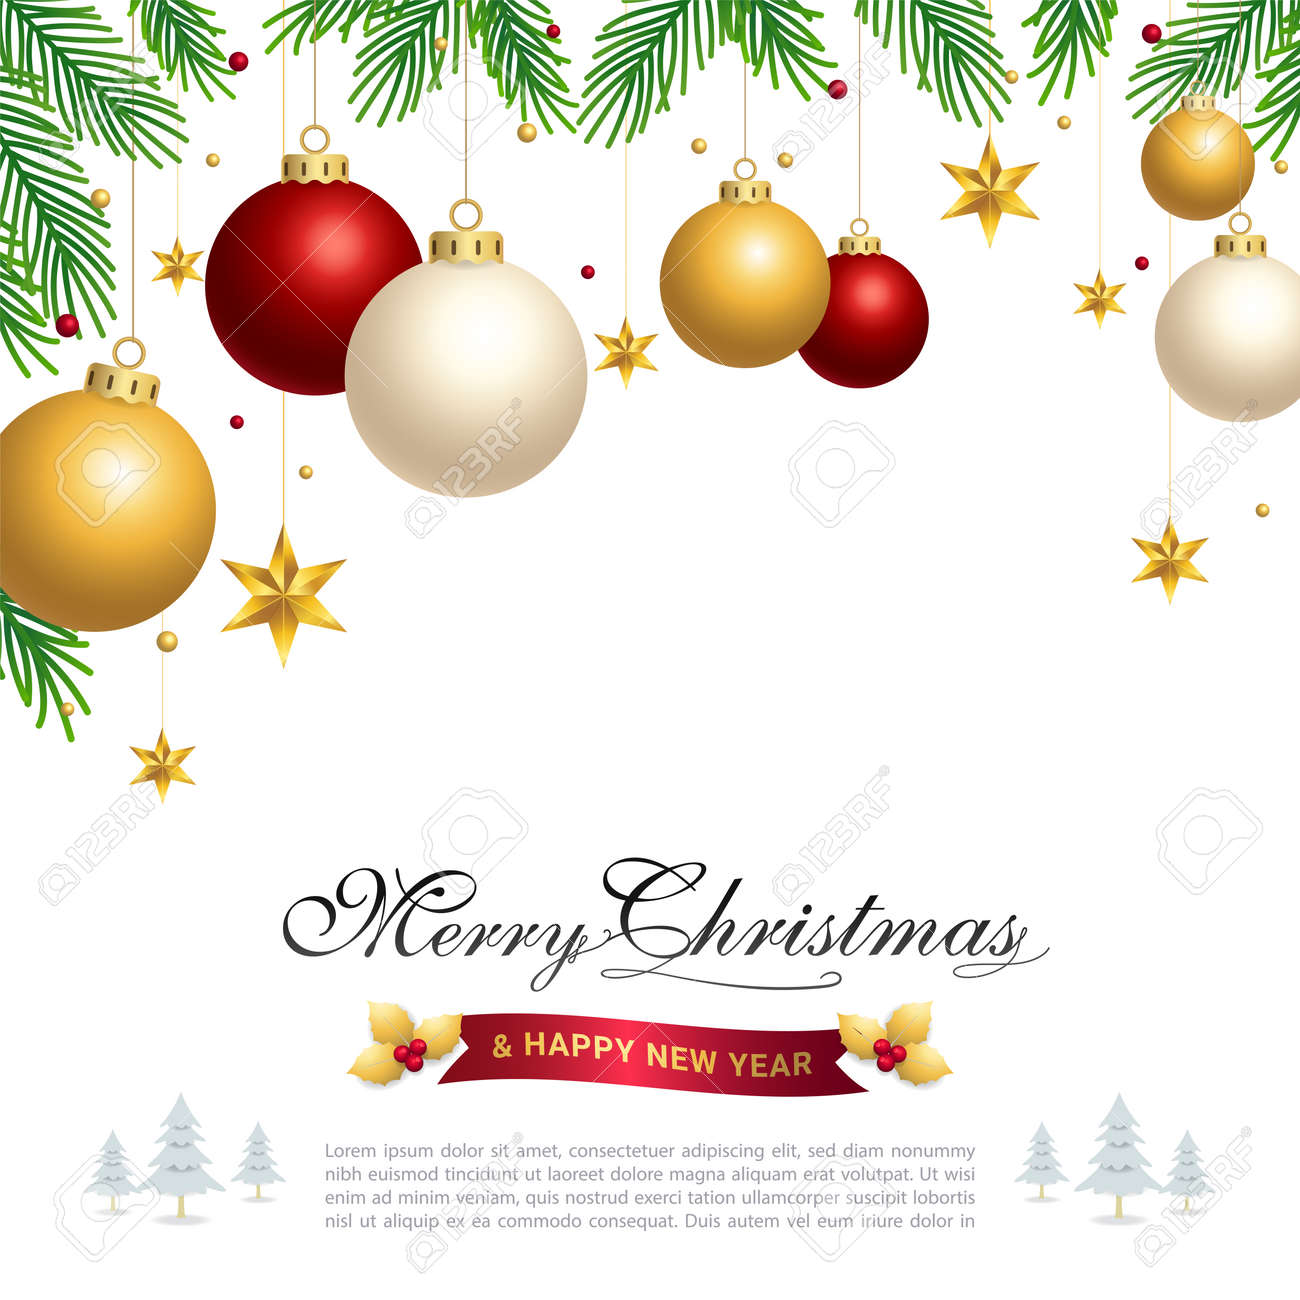 Merry Christmas banner poster or backdrop template with festive elements border - 160915502